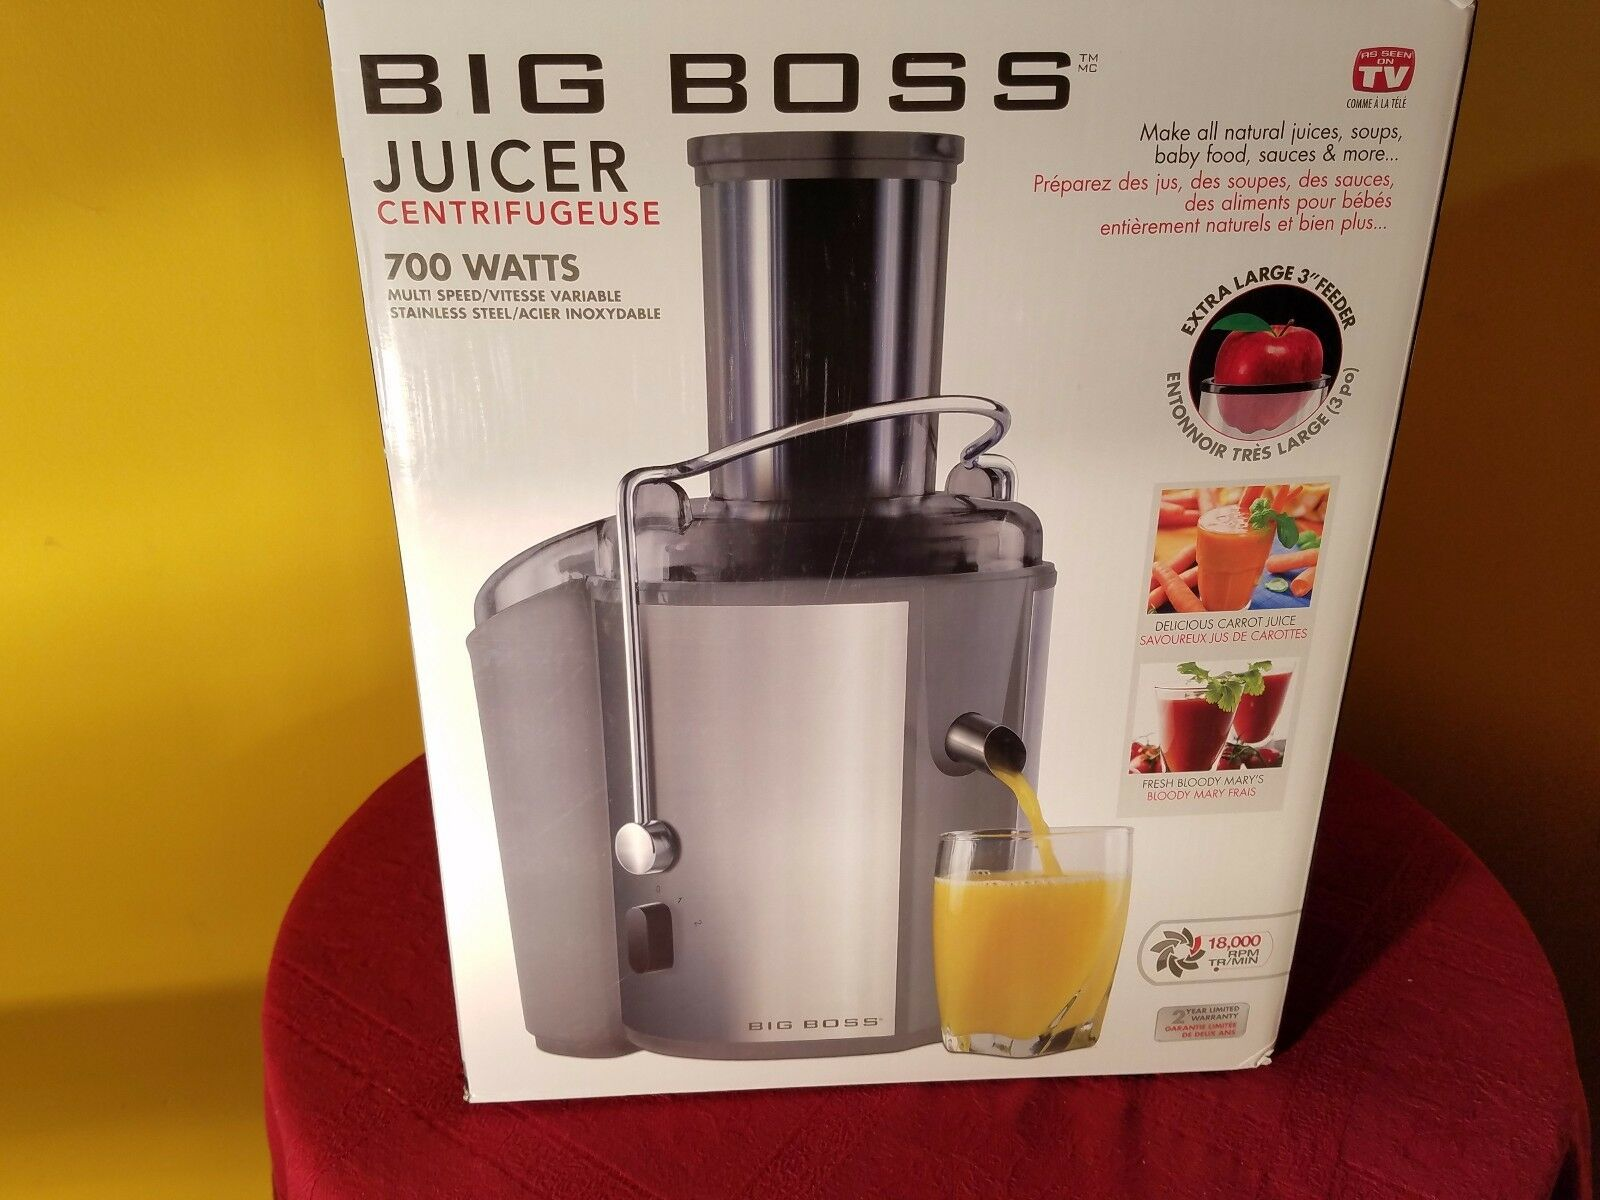 Big Boss 700 W 18,000 tr min en acier inoxydable multi vitesse Juicer